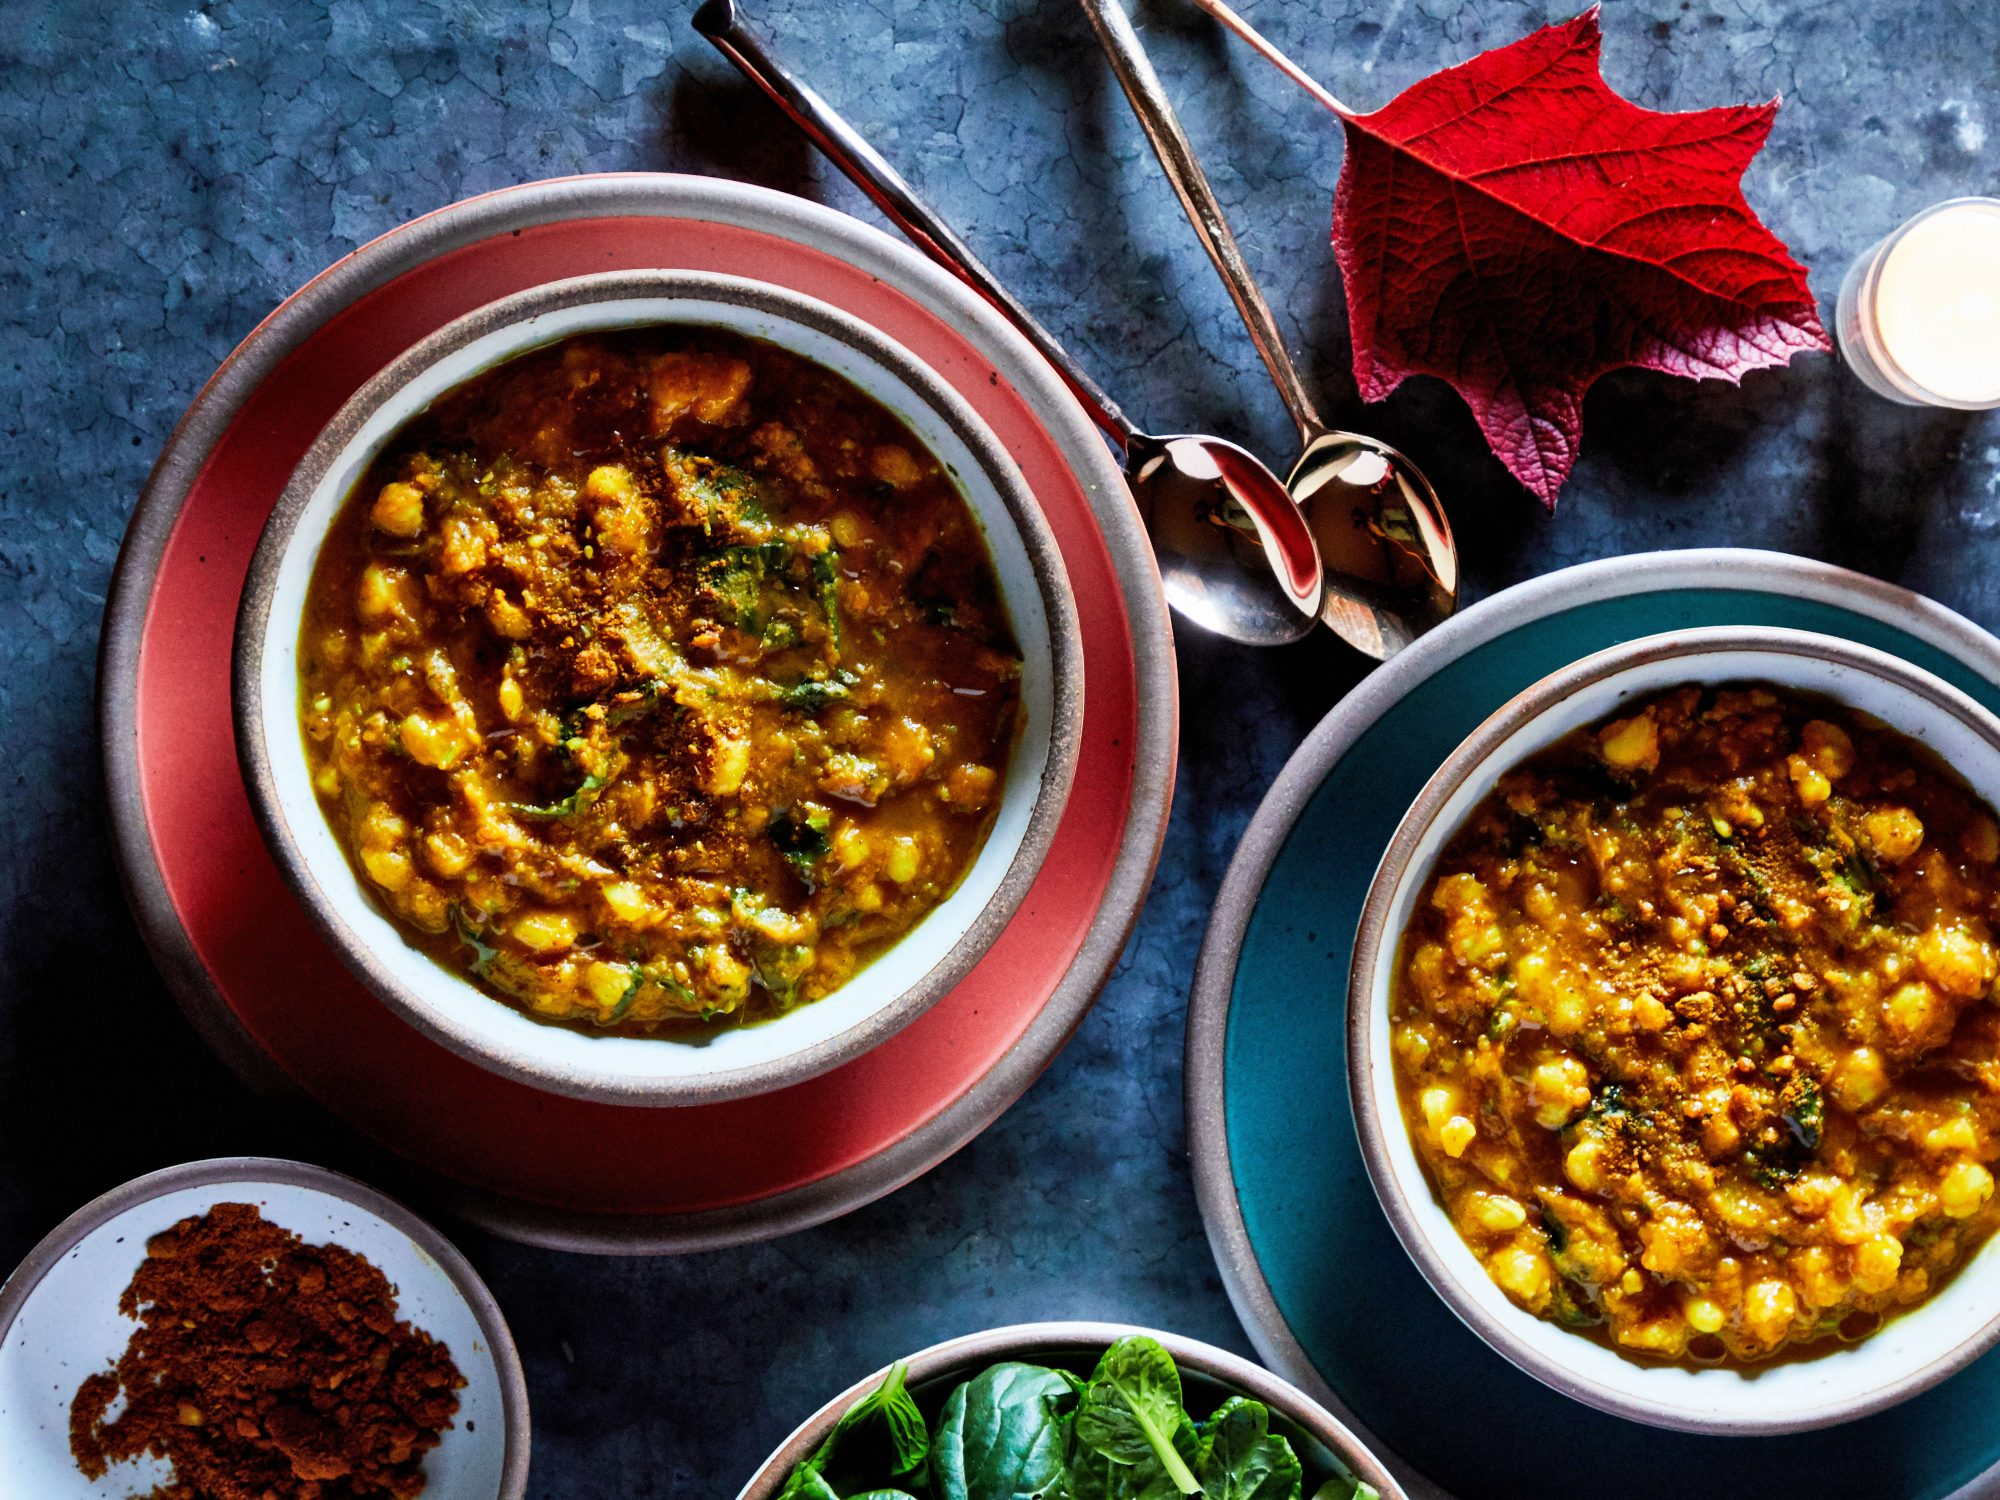 Peanut-Pumpkin Stew with Hominy